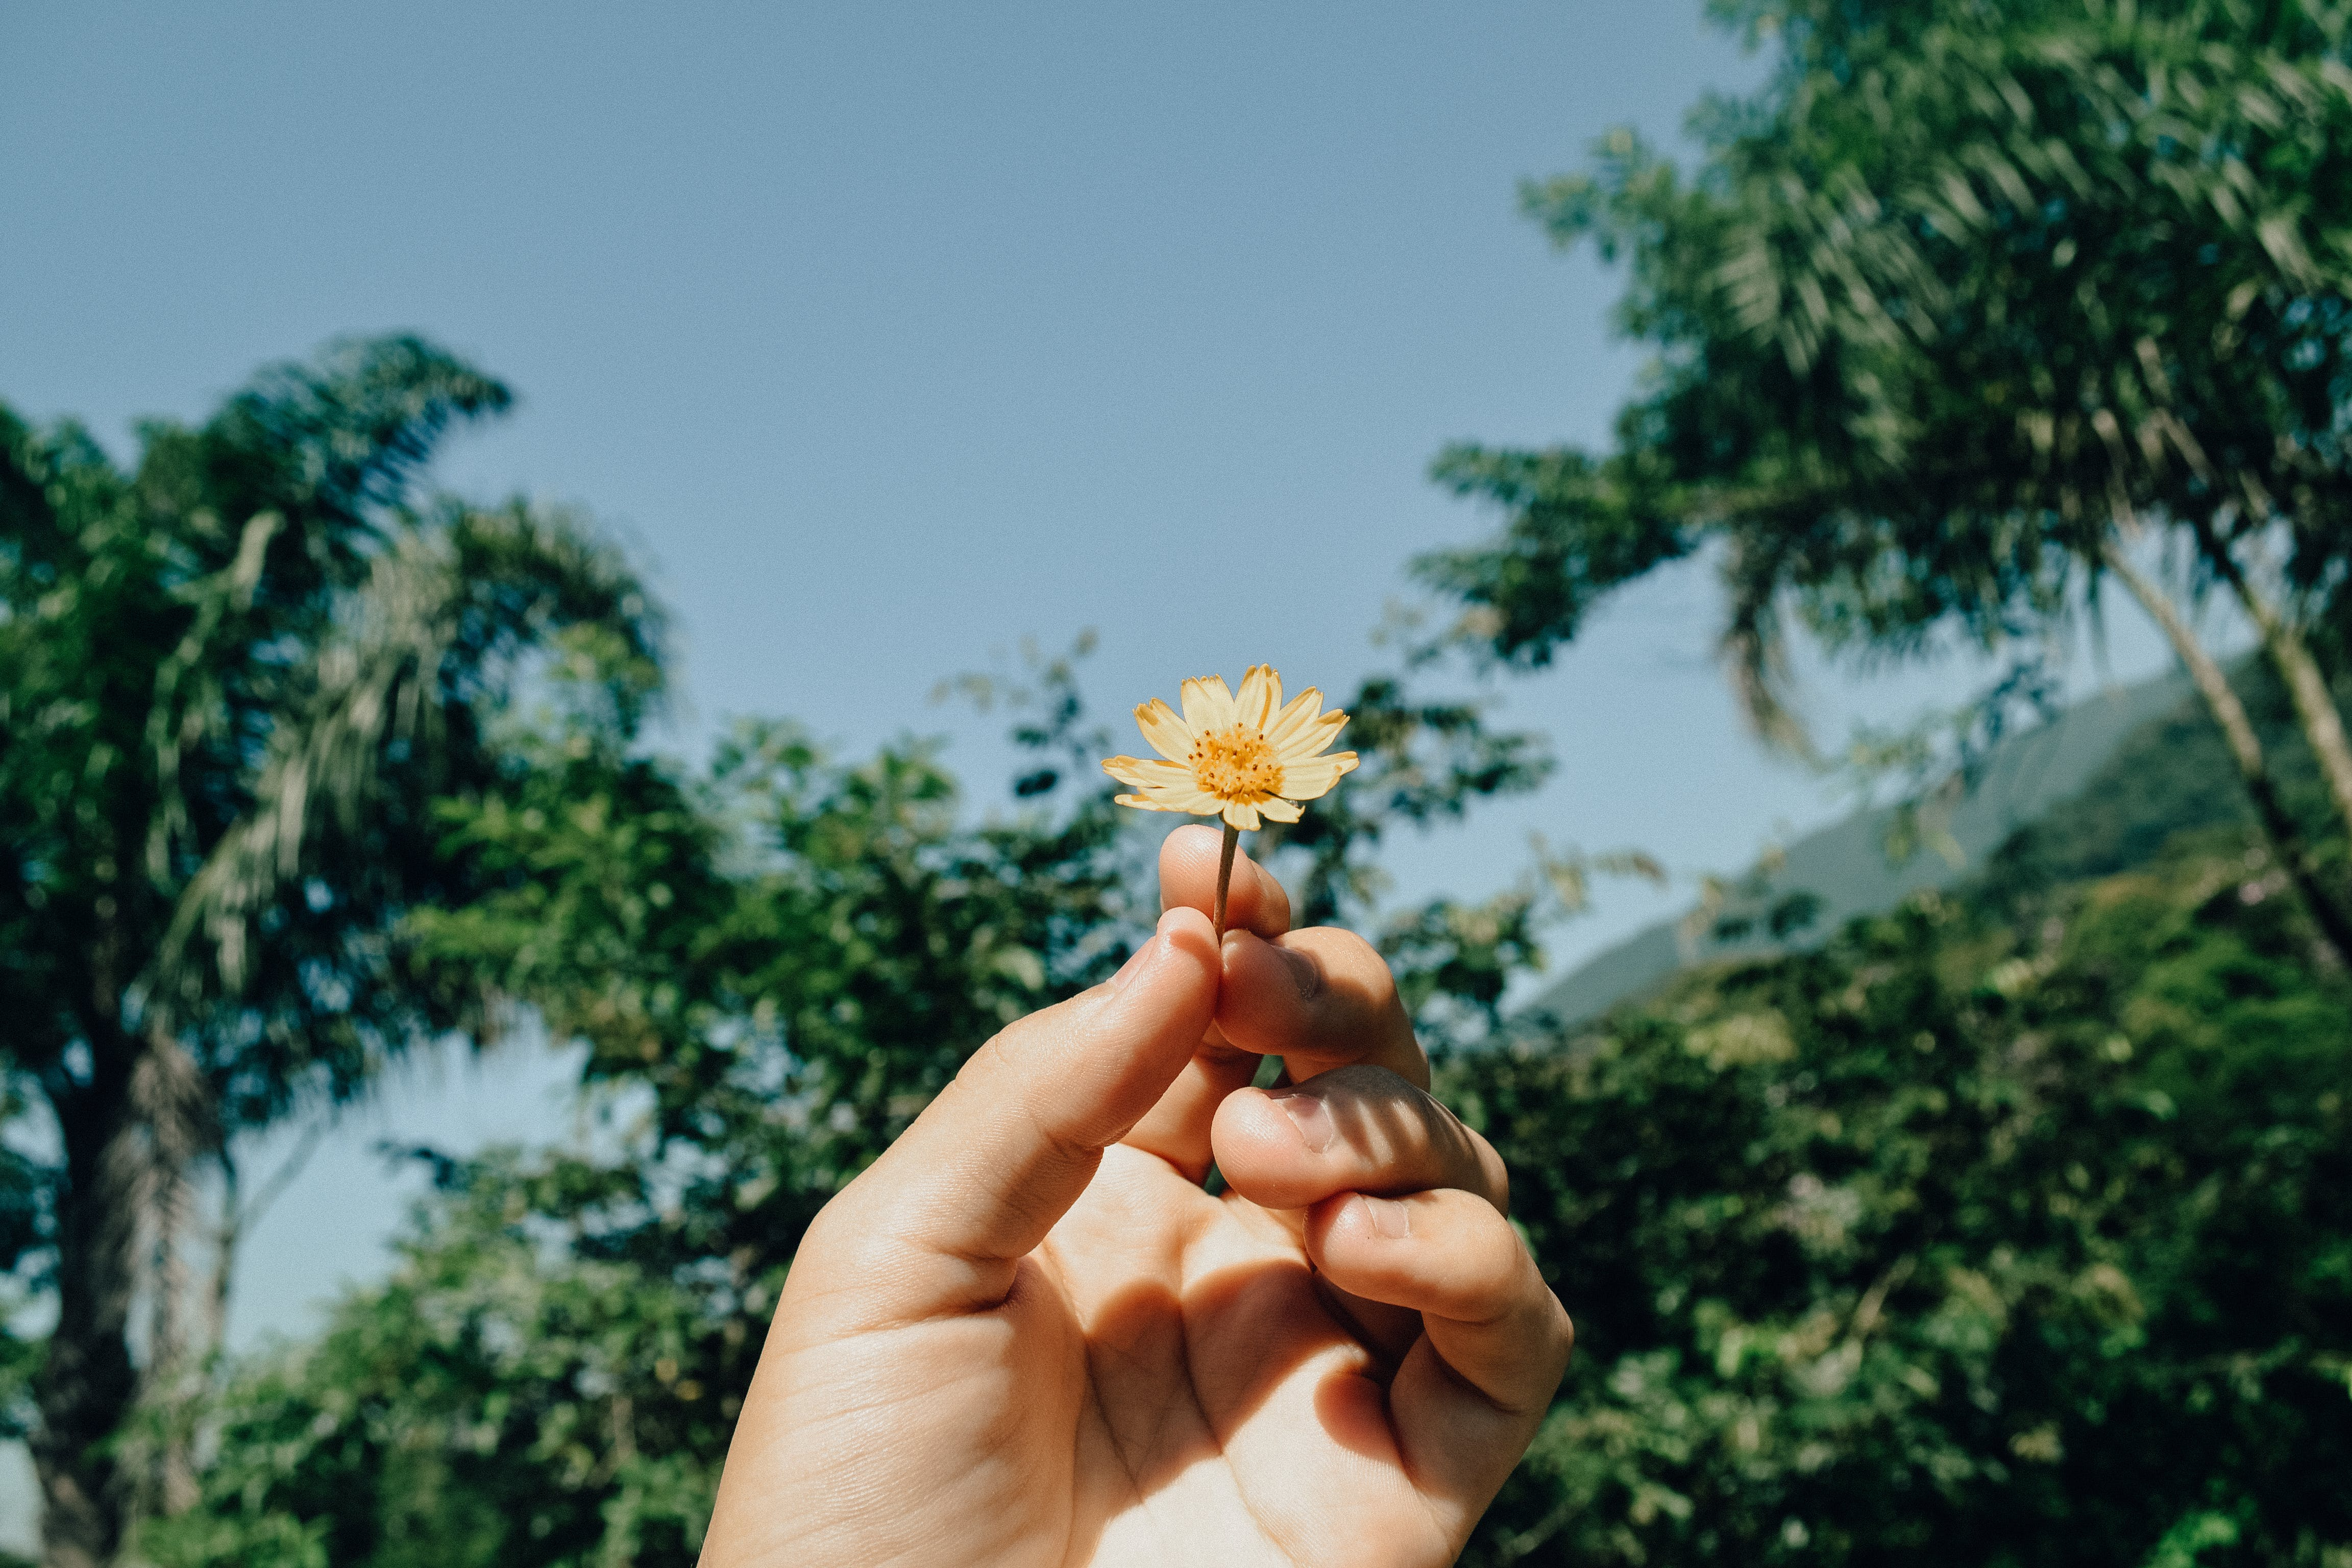 Person Holding White Aster Beside Trees Under White Clouds Blue Skies Daytime